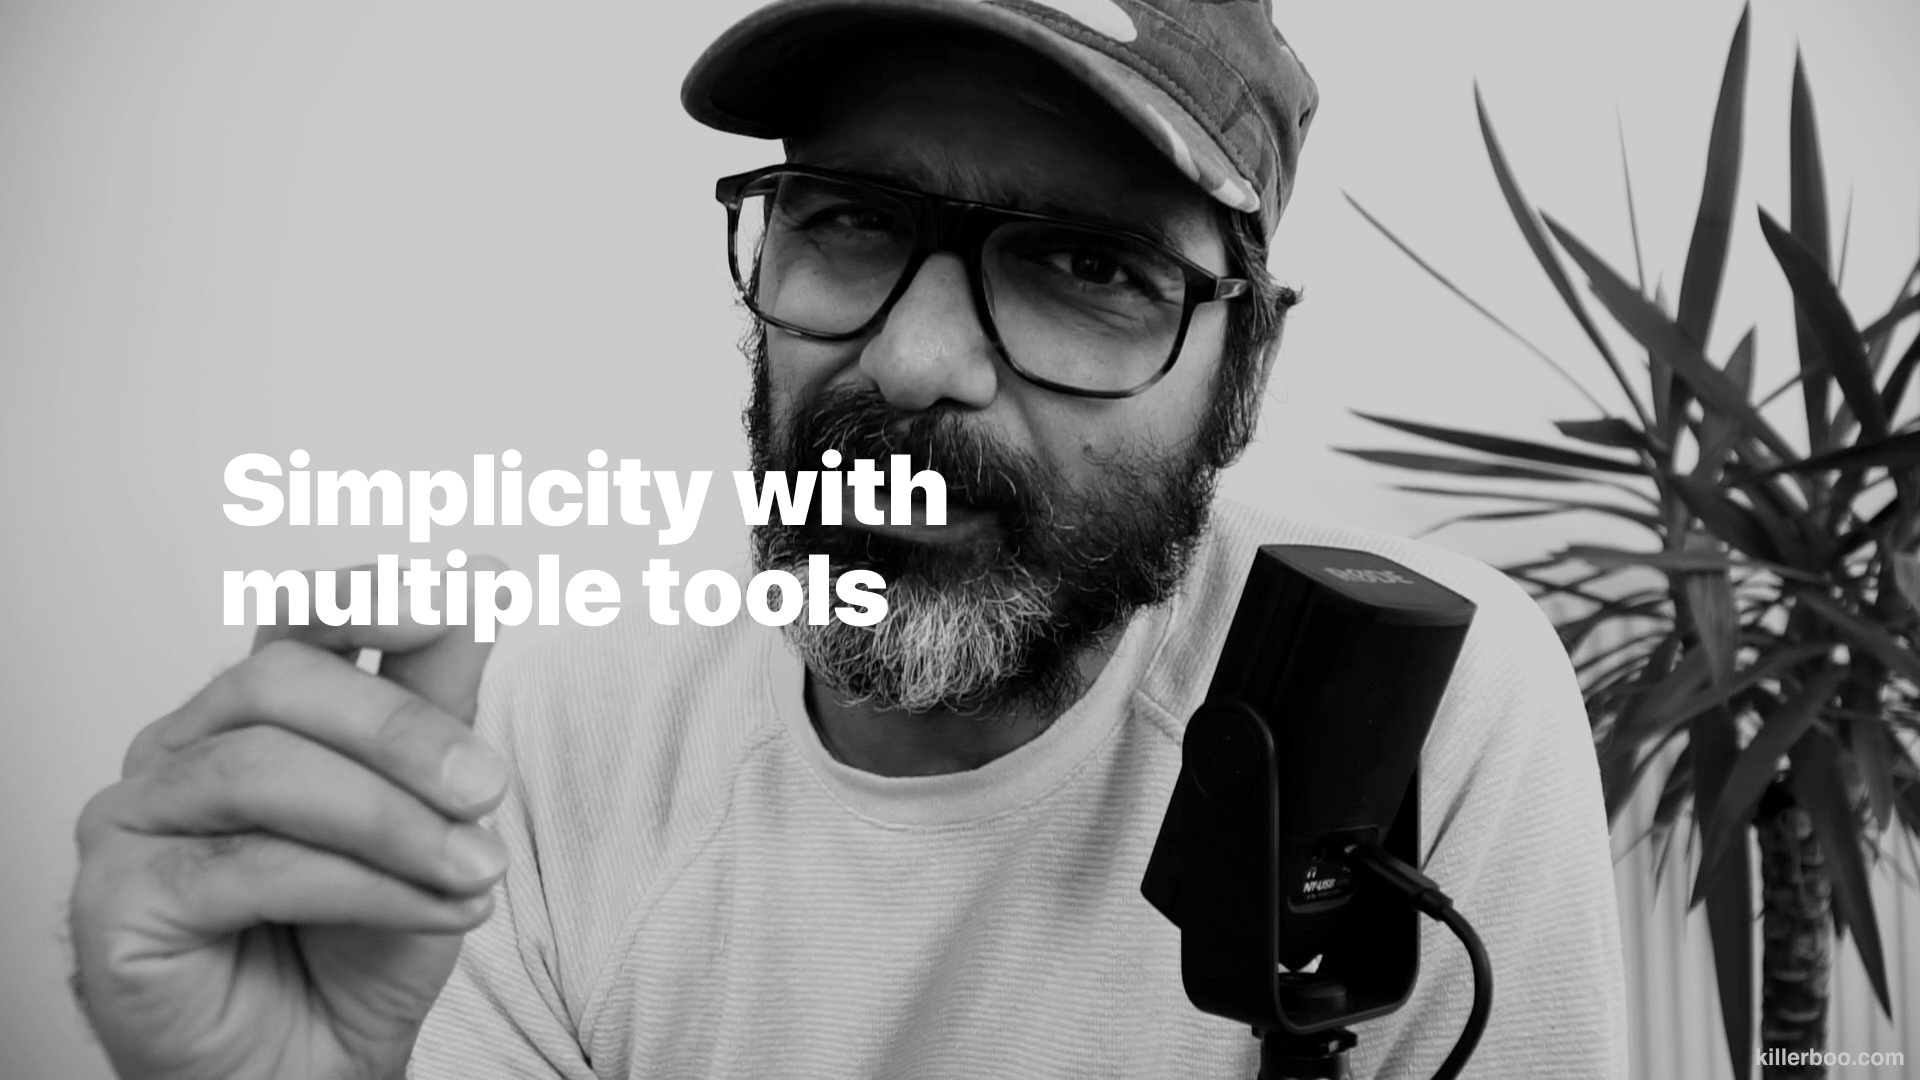 Simplicity with multiple tools